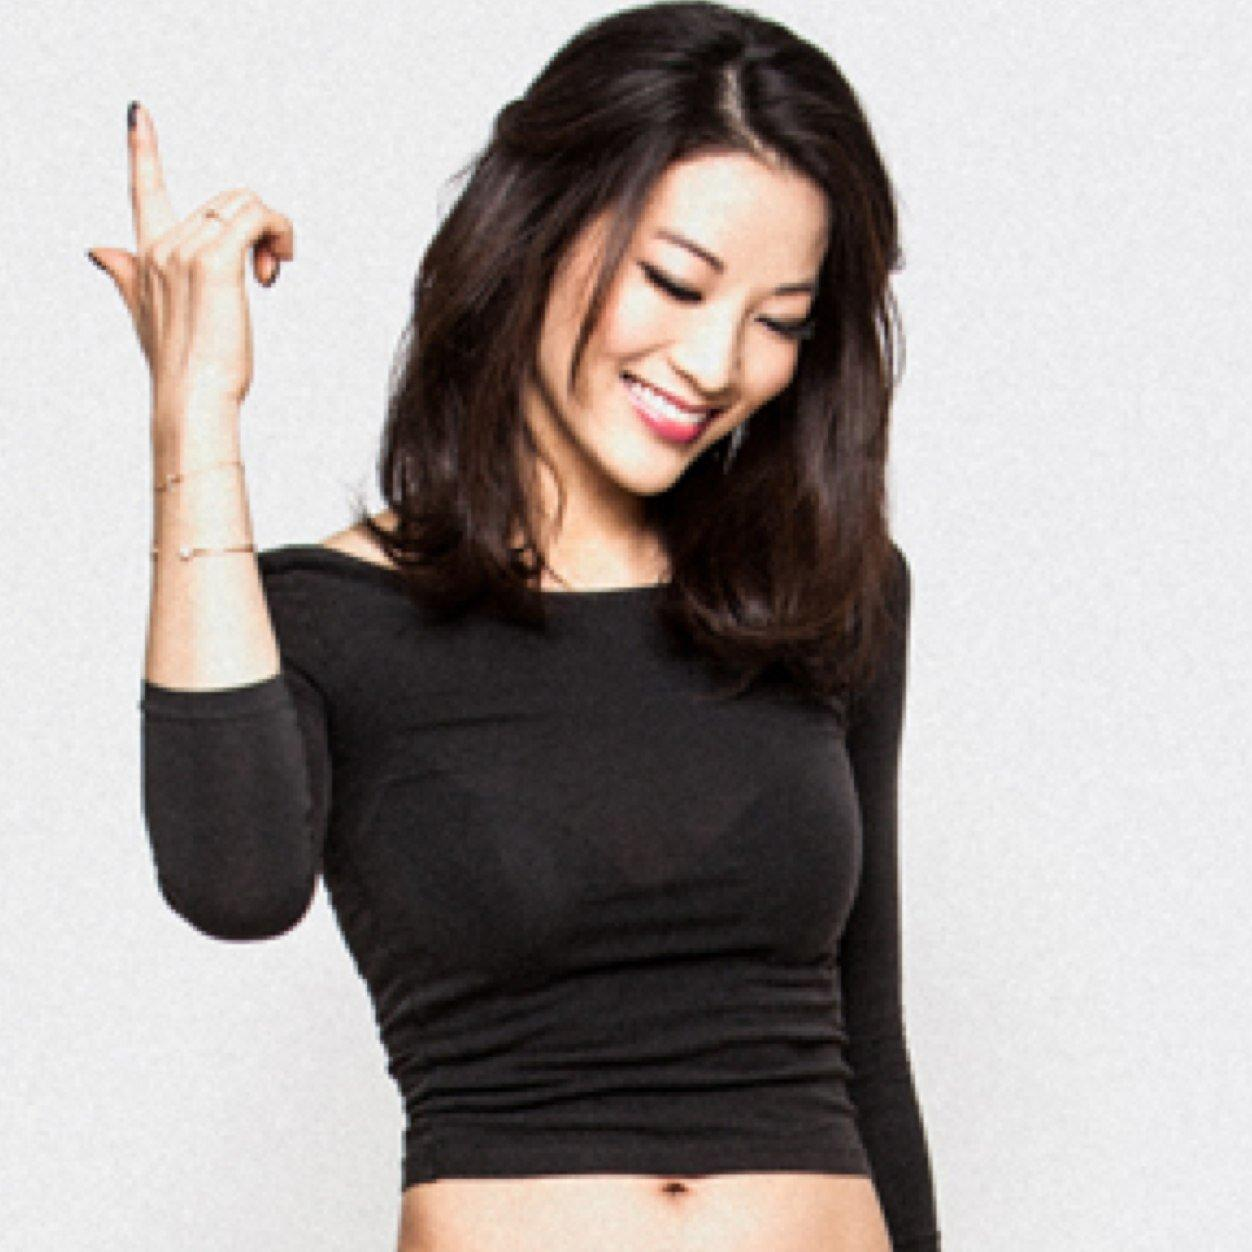 1252x1252 - Arden Cho Wallpapers 1